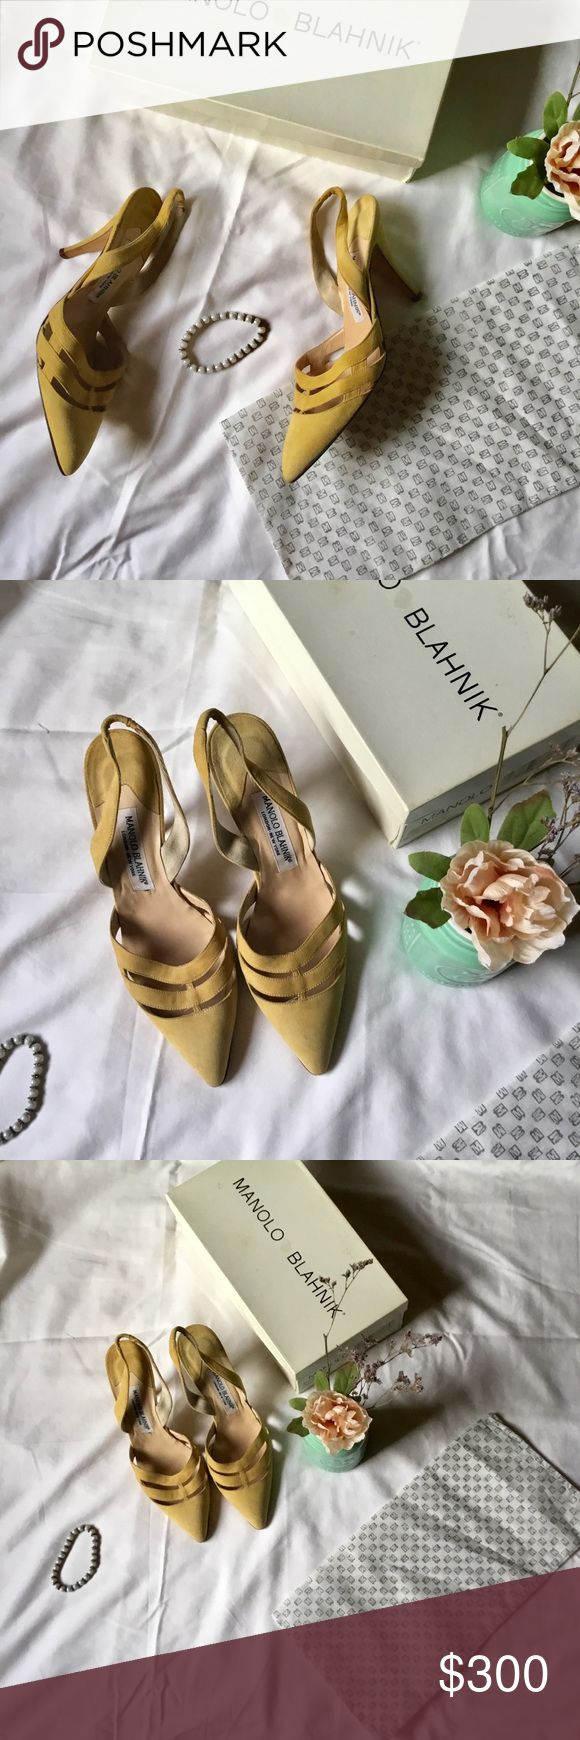 👡Manolo Blahnik Vintage Suede Yellow Slingbacks👡 Vintage. Gorgeous. Classy. I've kept these beauties stored in this box for over a decade. They are in awesome condition. 👡👡👡😍😍😍 Size is 38 1/2. Can include dust bag if requested. This listing is without this dust bag. I only have one dust bag and two Manolo Blahnik listings. Serious offers only please. 😘 Manolo Blahnik Shoes Heels